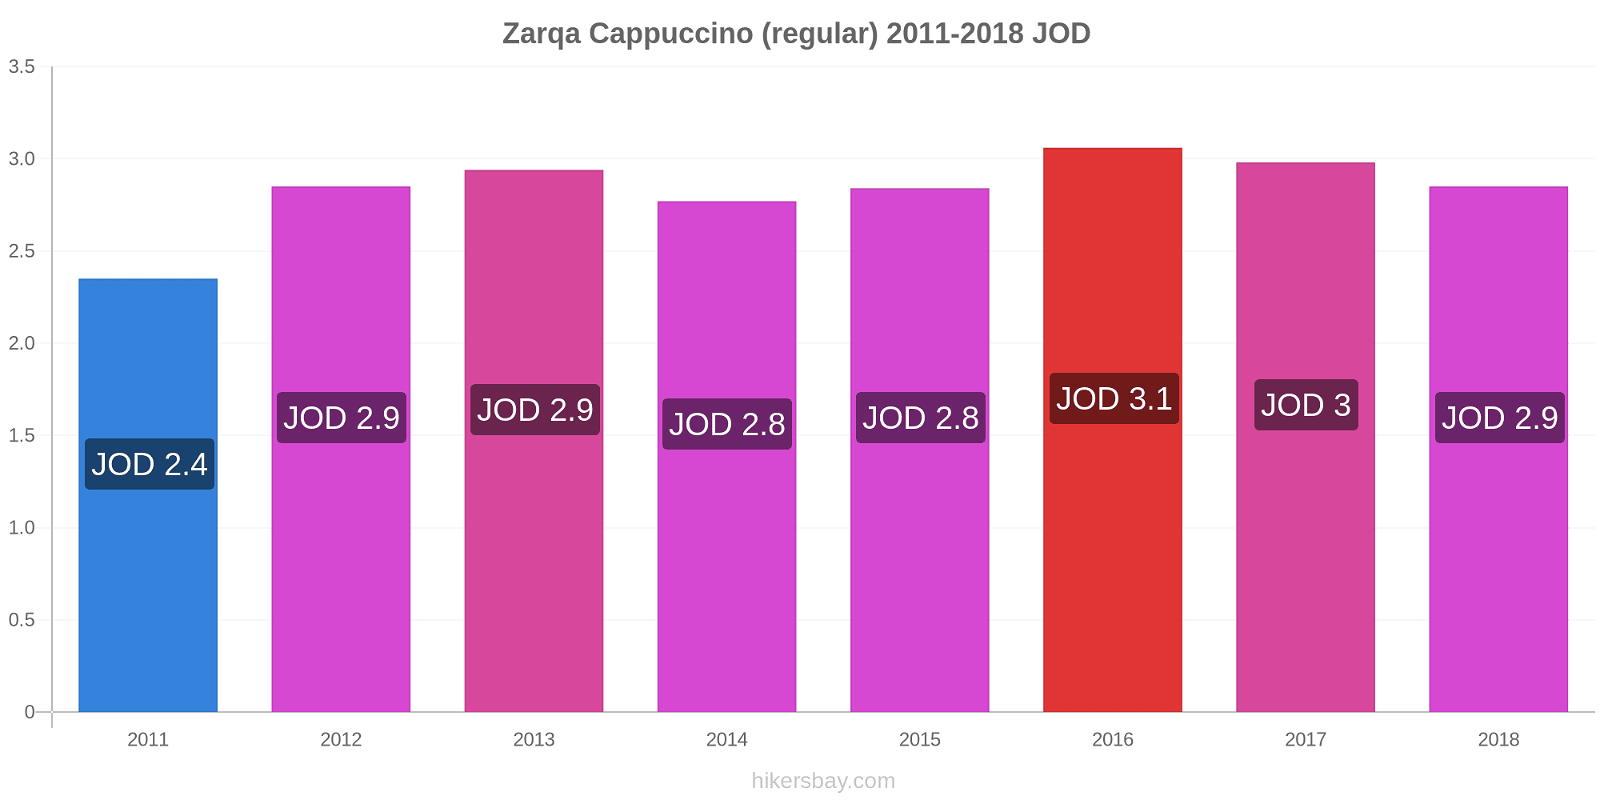 Zarqa price changes Cappuccino (regular) hikersbay.com